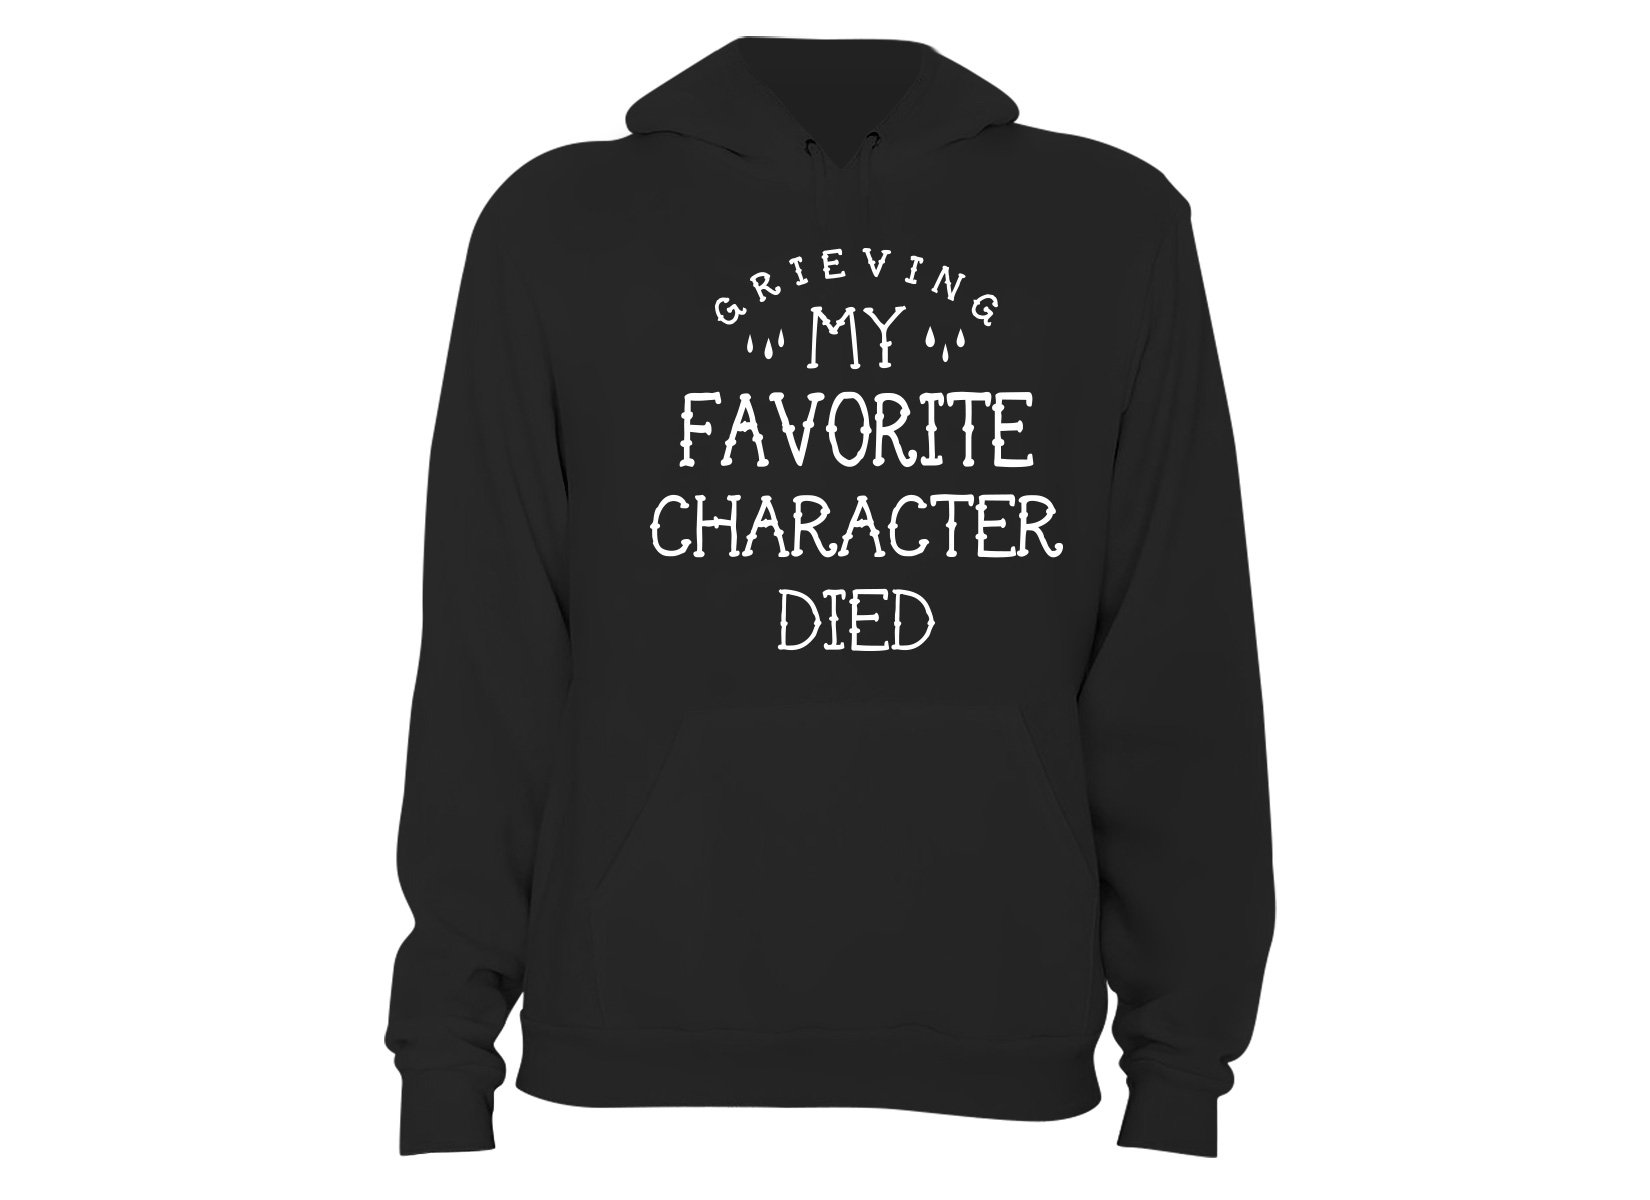 My Favorite Character Died on Hoodie